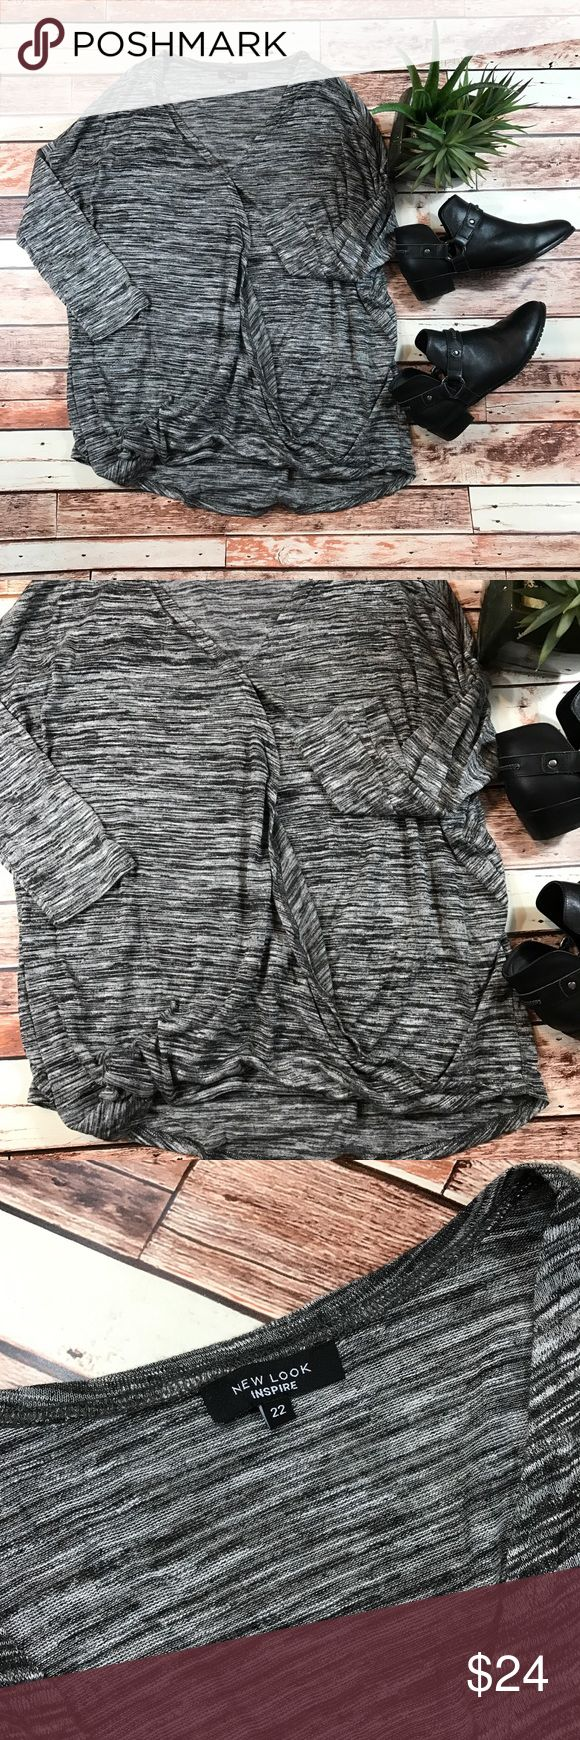 New look gray casual long sleeve top Size 22 in excellent condition, no flaws! Perfect for the fall! Length-30, bust-28 pit to pit ***NO modeling or trades!! ::196 New Look Tops Blouses